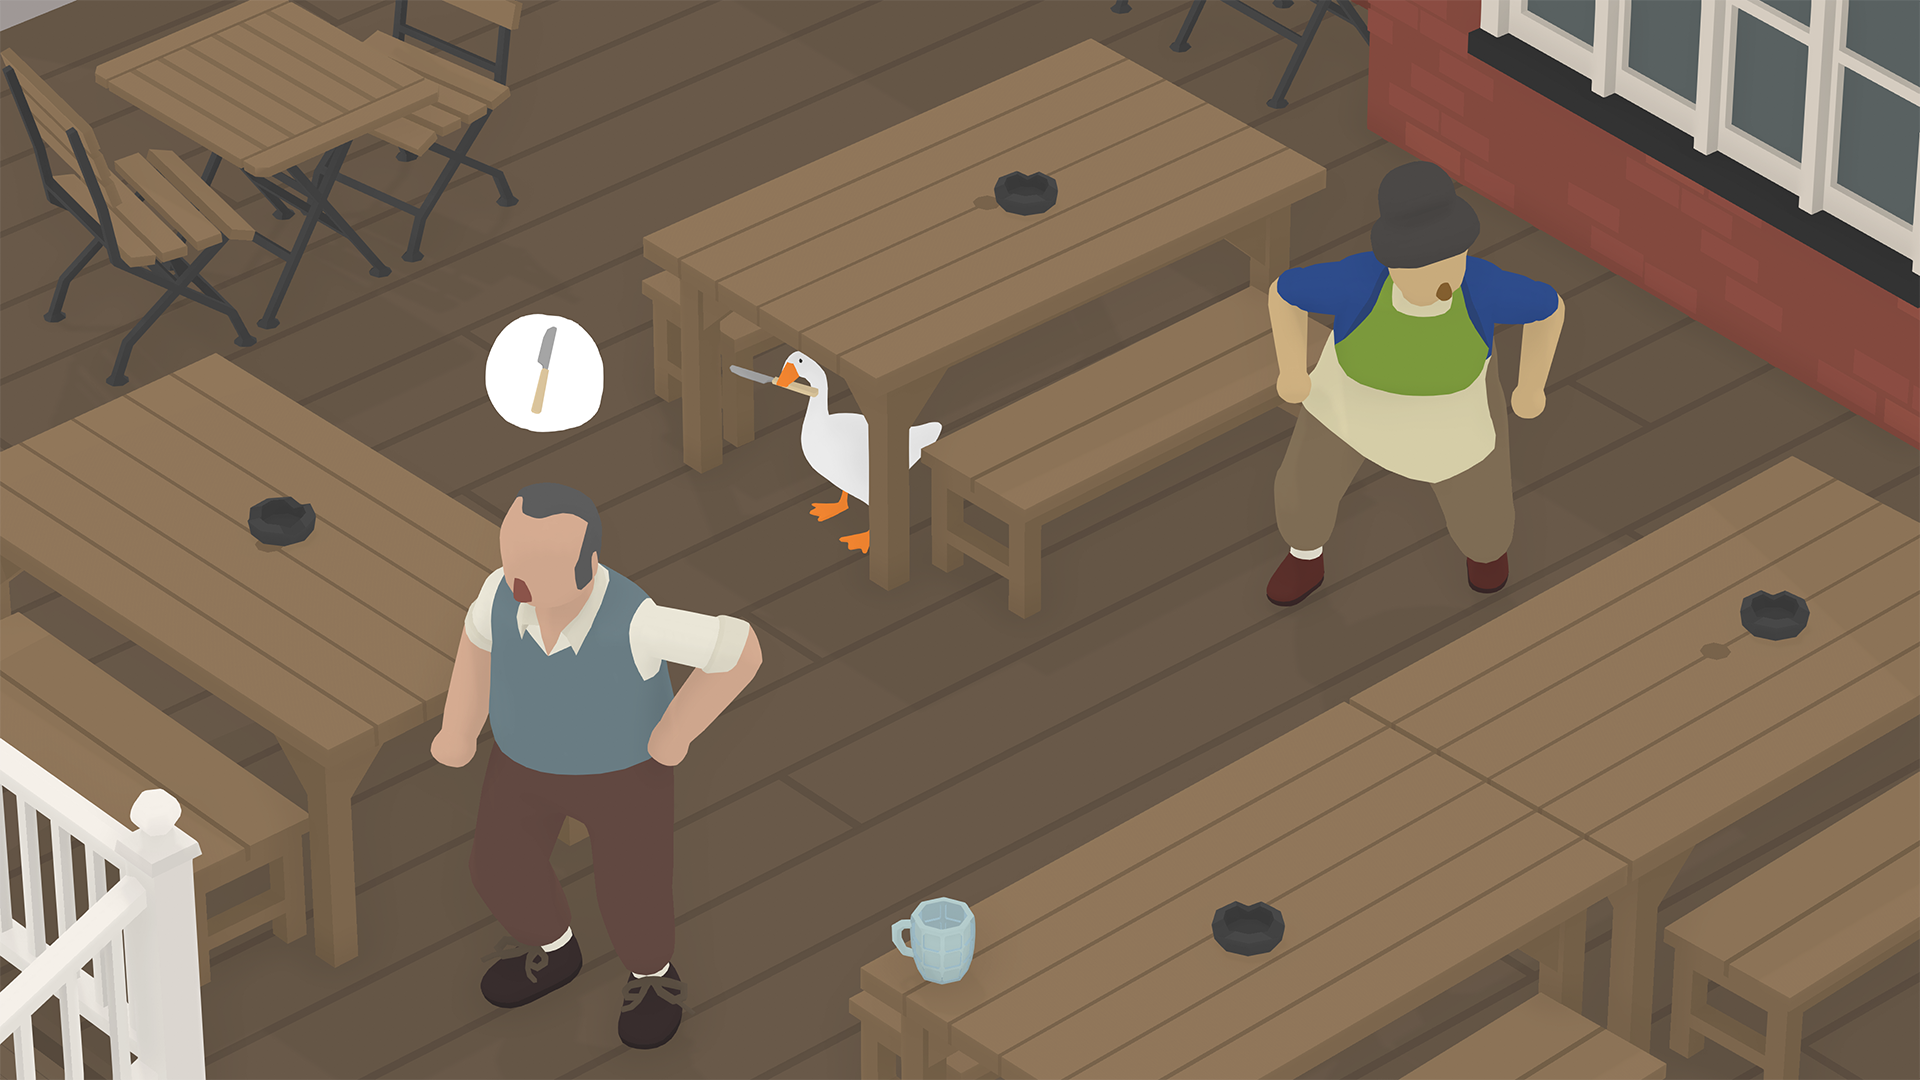 An illustration of a goose standing under a table, holding a knife, while two people search for the knife